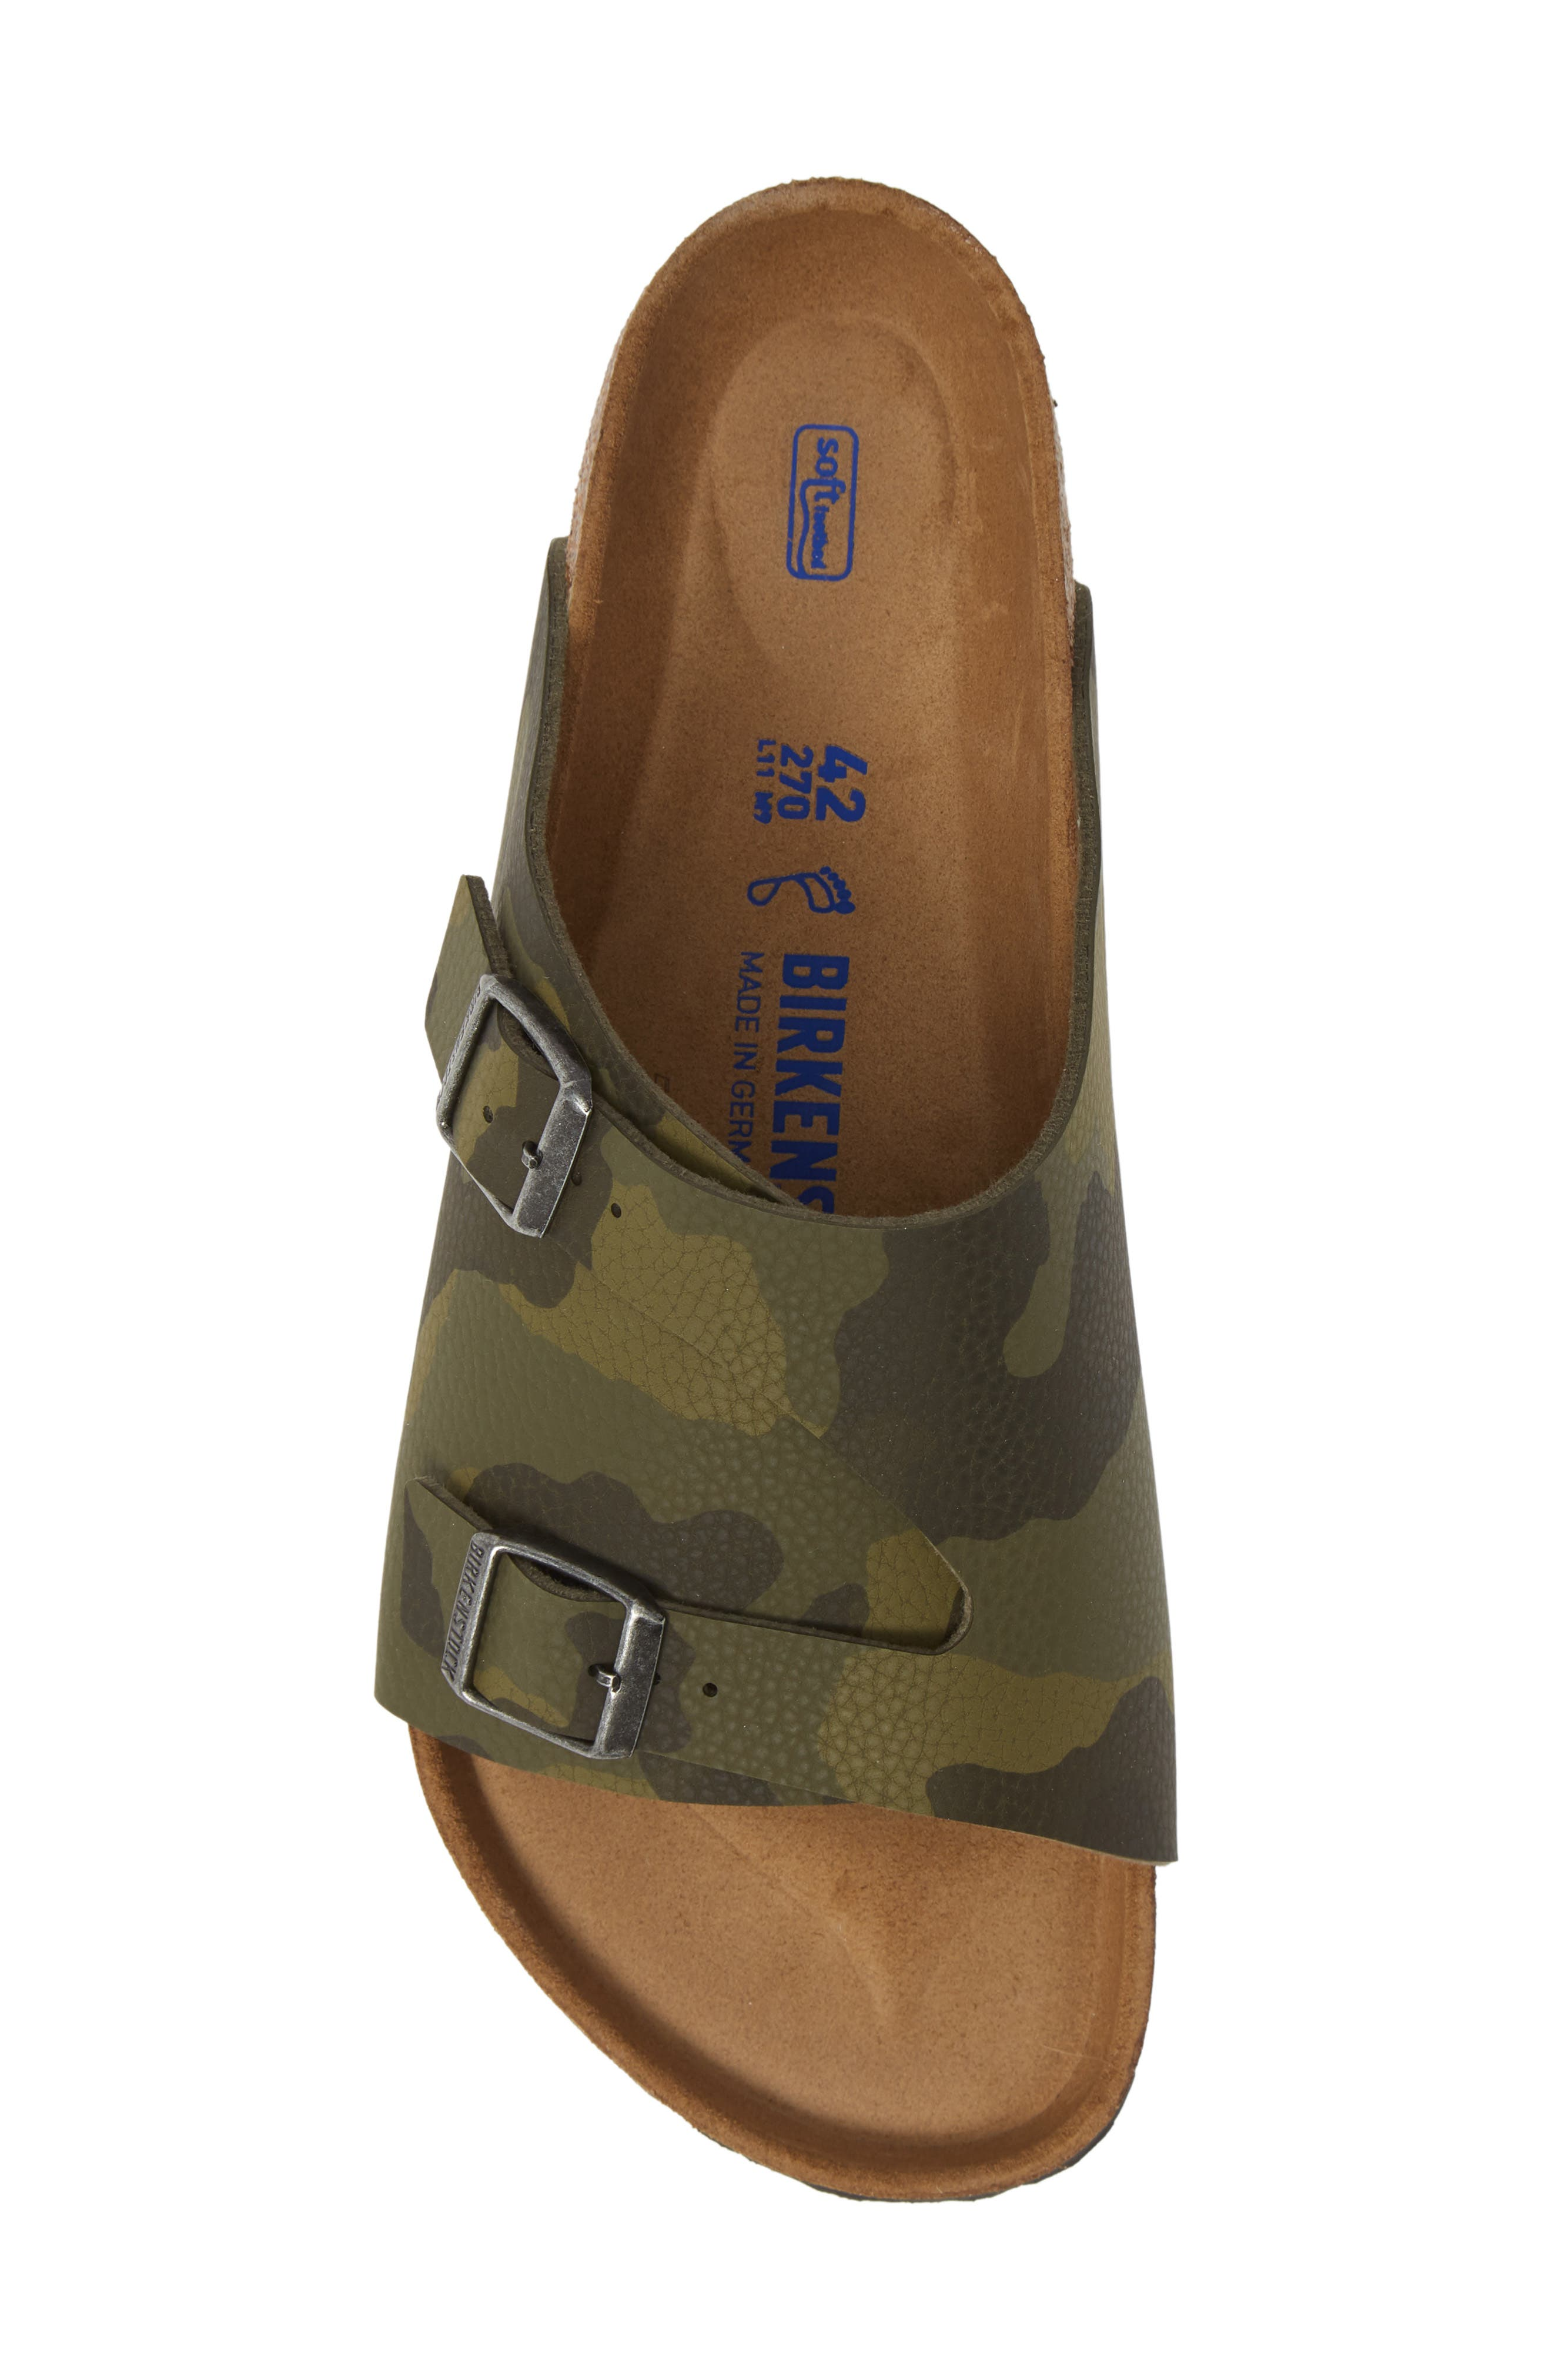 BIRKENSTOCK, Zurich Slide Sandal, Alternate thumbnail 5, color, DESERT CAMO GREEN